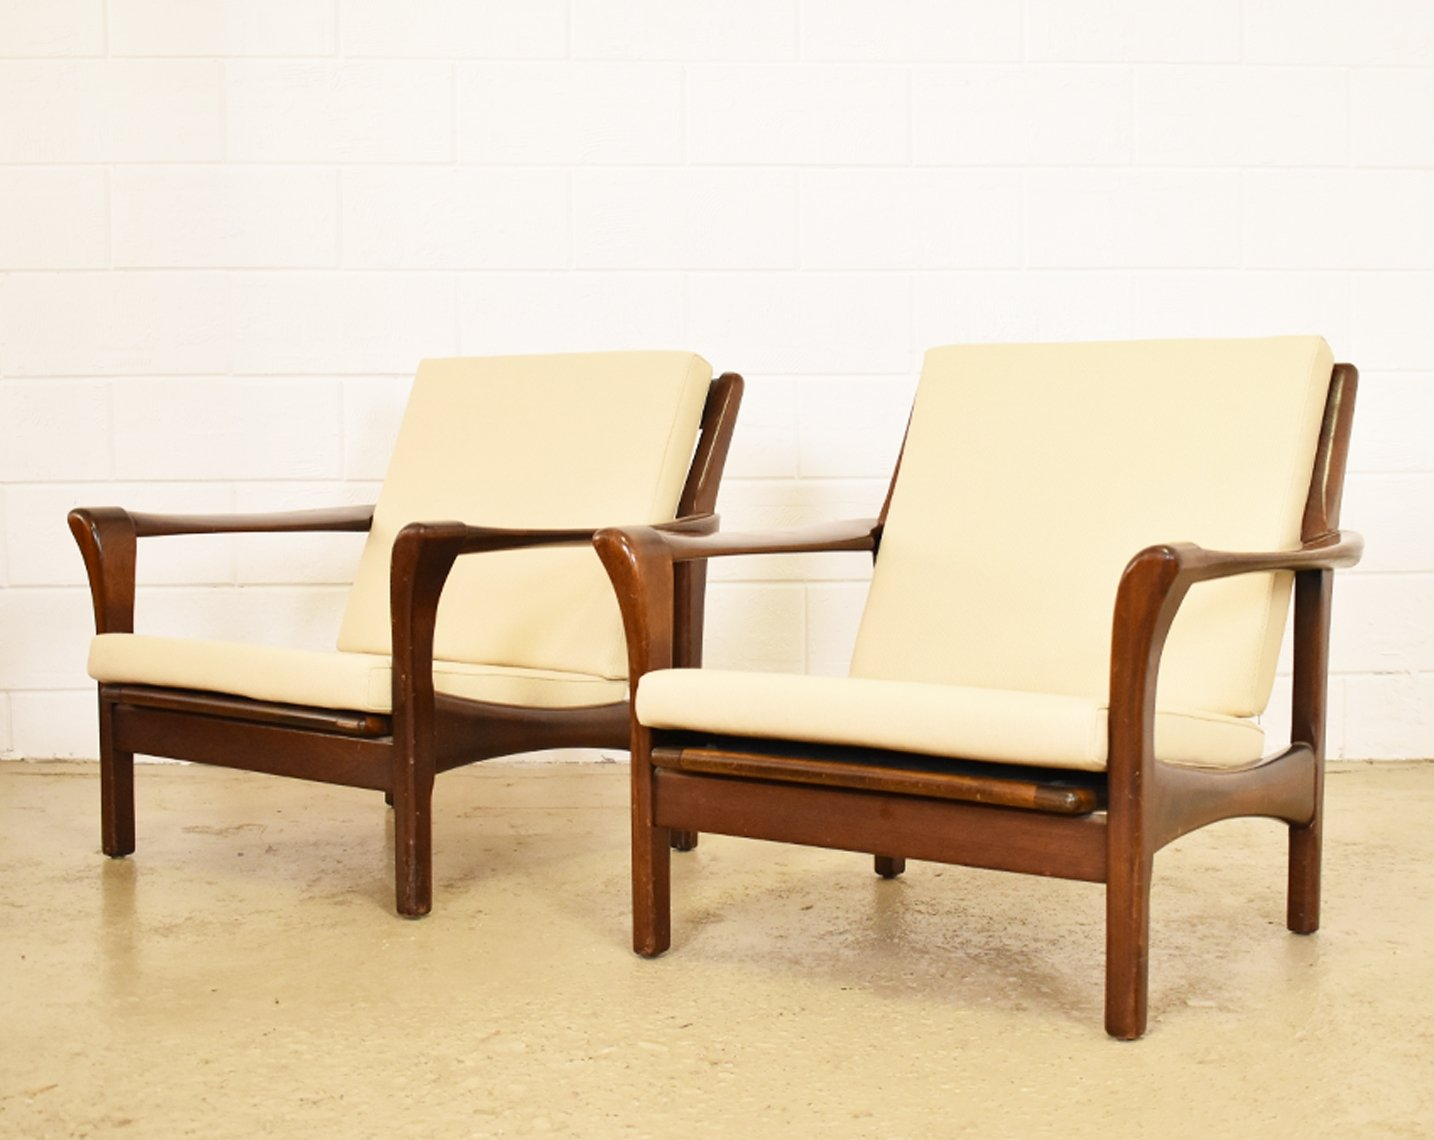 Pair of stella lounge chairs by walter knoll for knoll antimott pair of stella lounge chairs by walter knoll for knoll antimott 1960s parisarafo Gallery